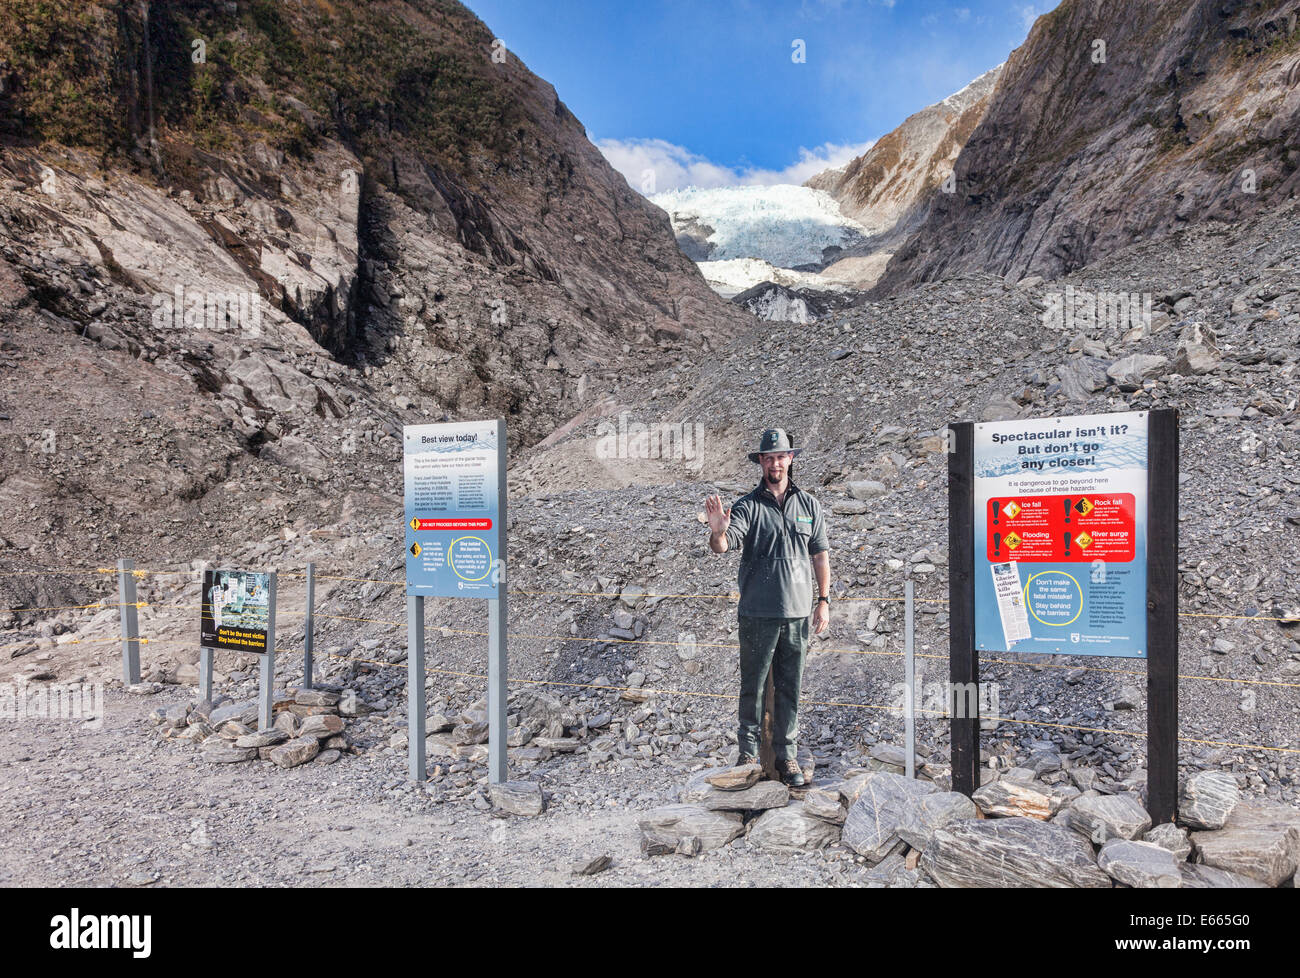 Franz Josef Glacier, with sign warning of how dangerous it is. Ranger is a cardboard cutout. - Stock Image